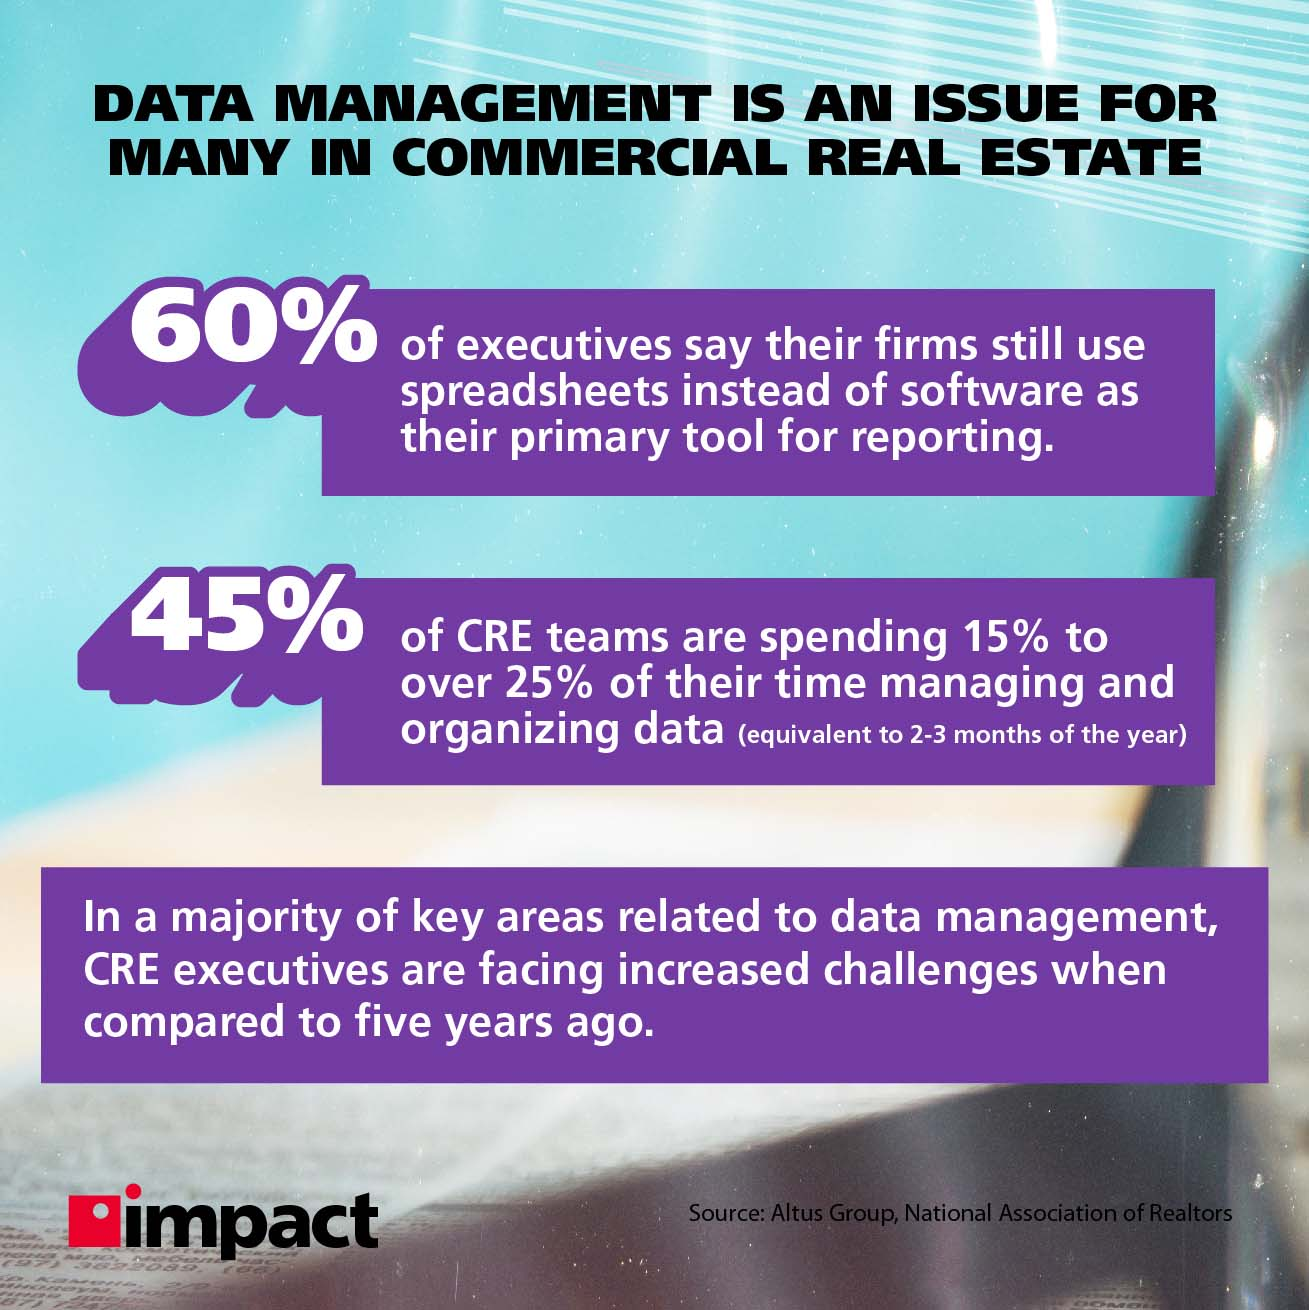 Info image on how Data management is an issue for many in commercial real estate.